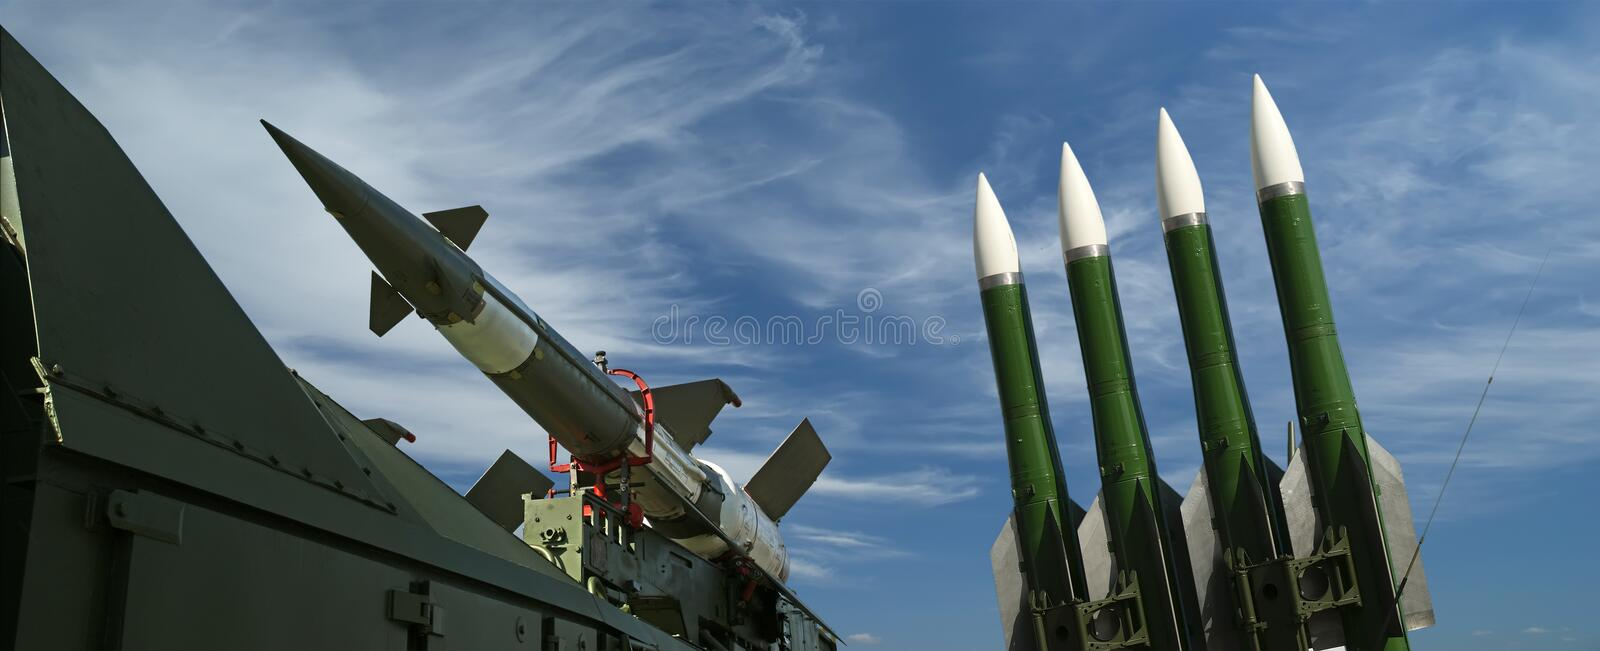 Modern Russian anti-aircraft missiles royalty free stock photo